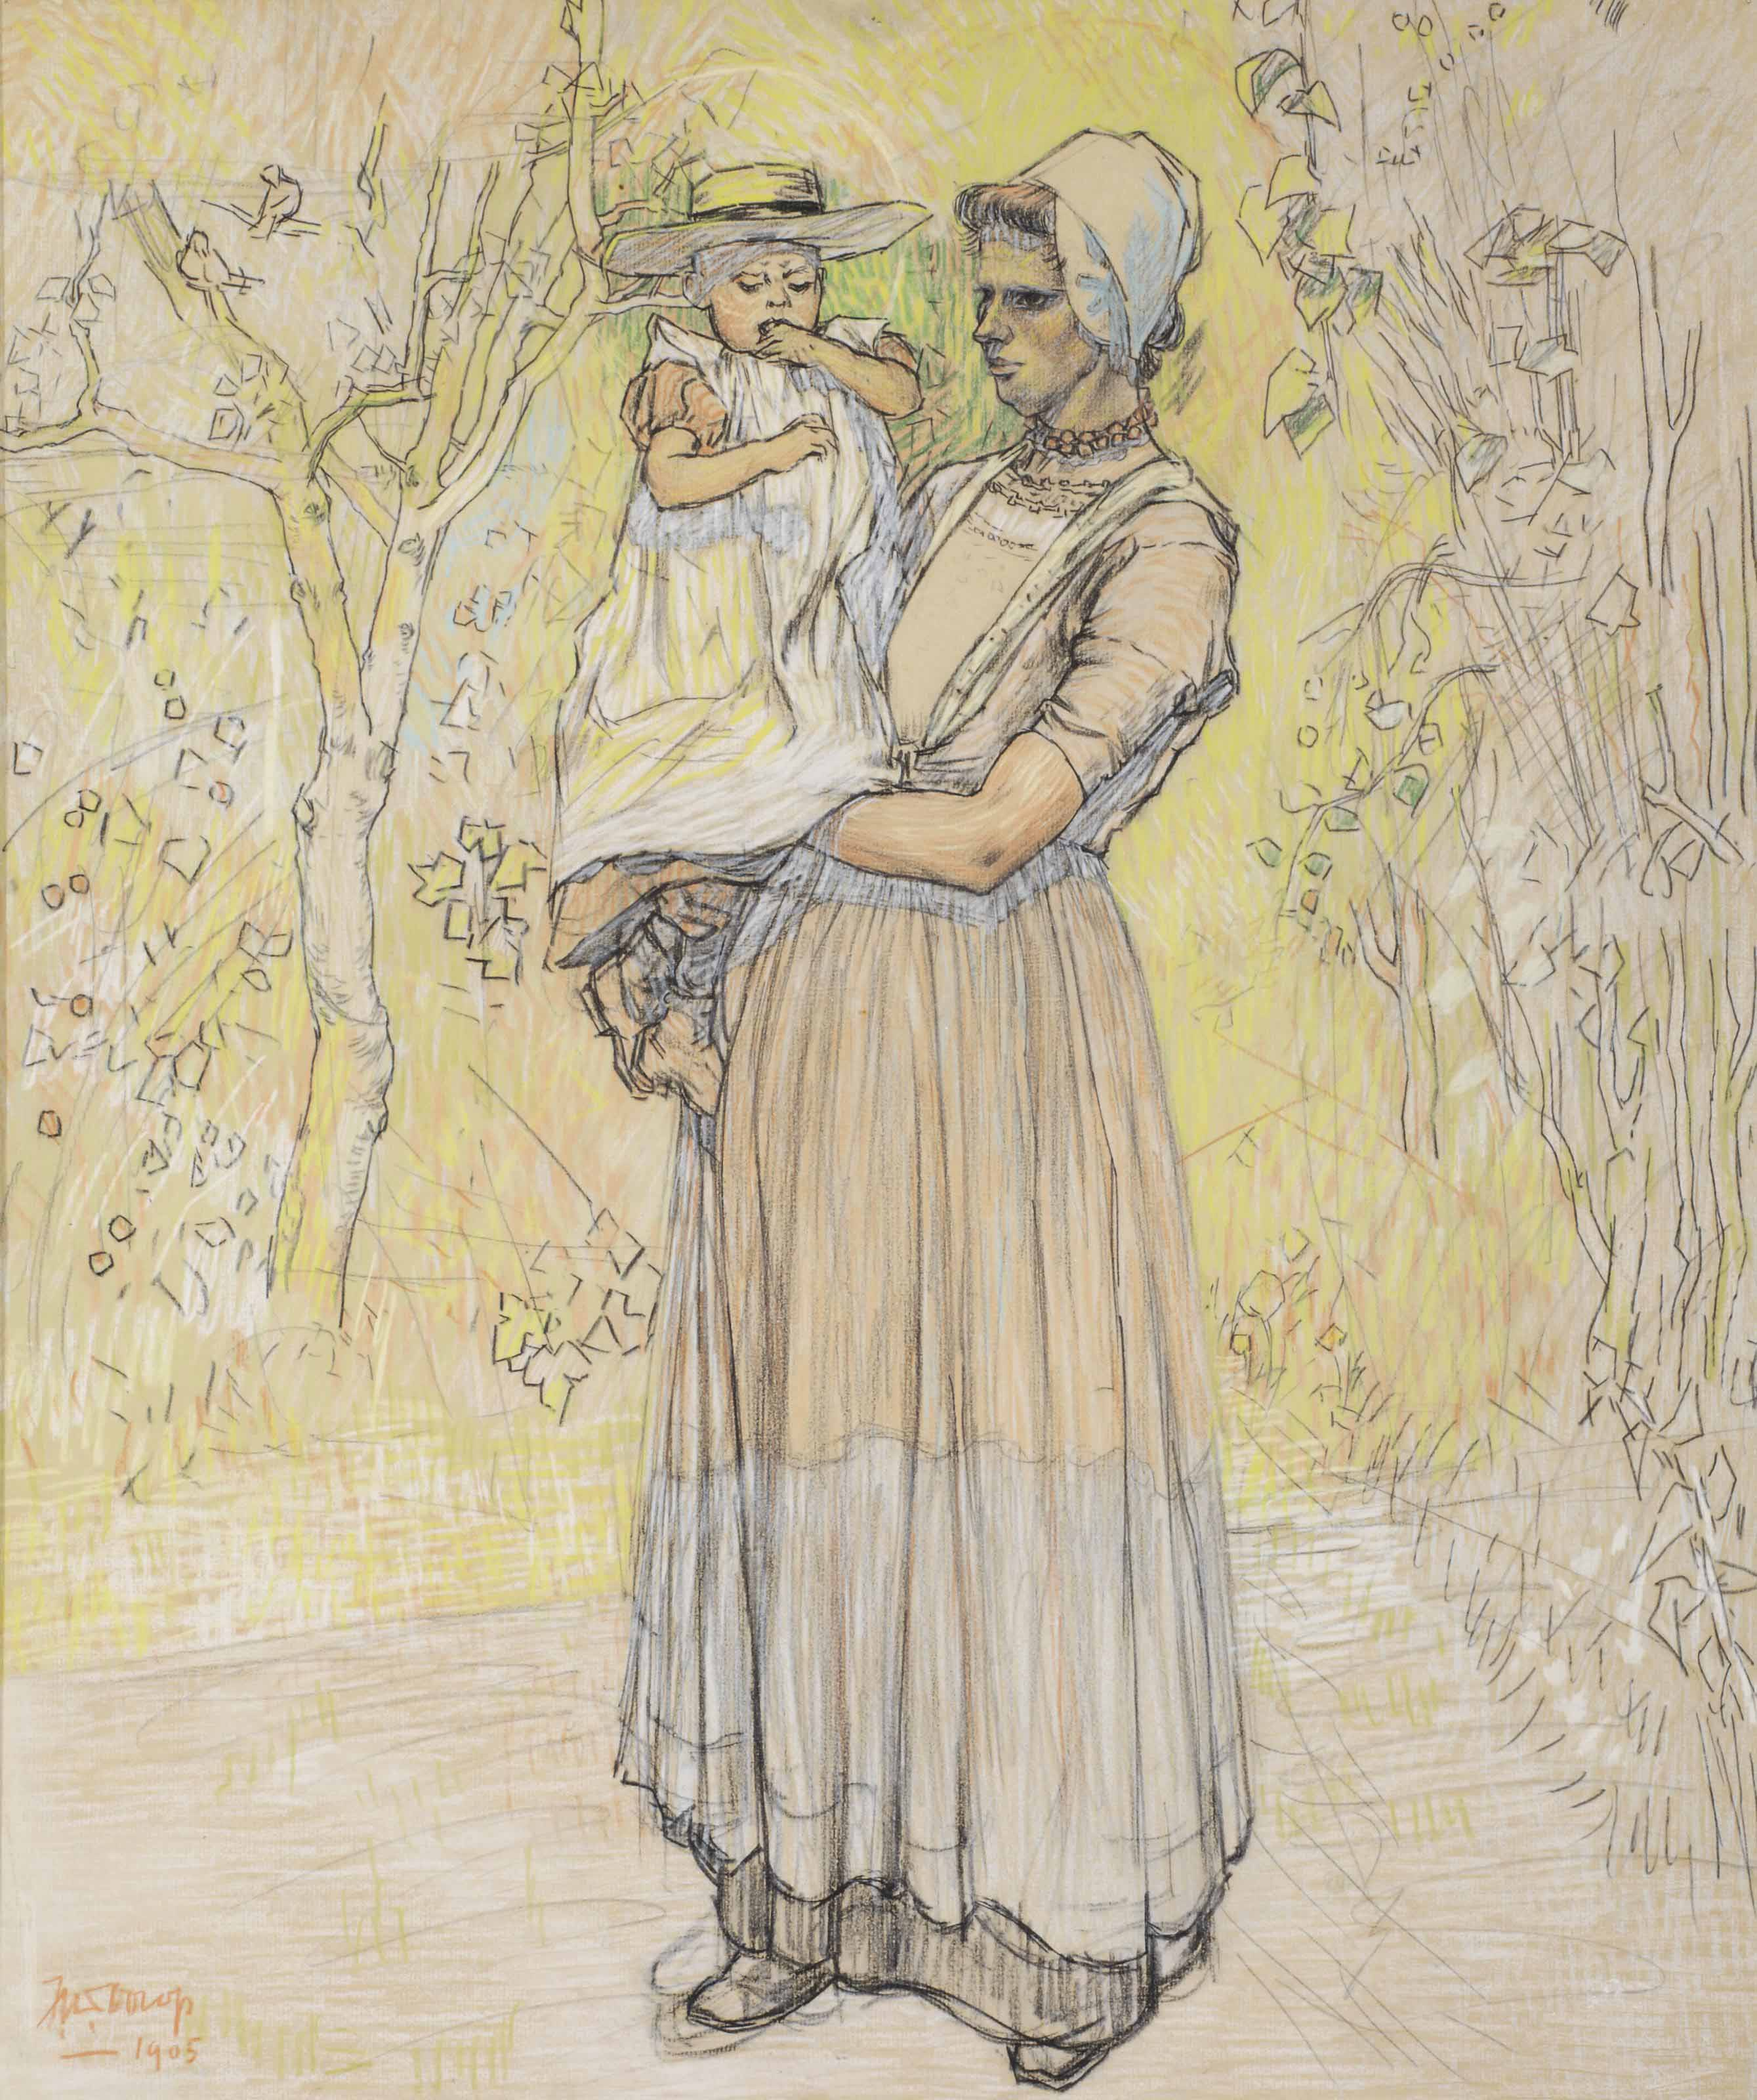 Woman with child in local Dutch attire, Zeeland